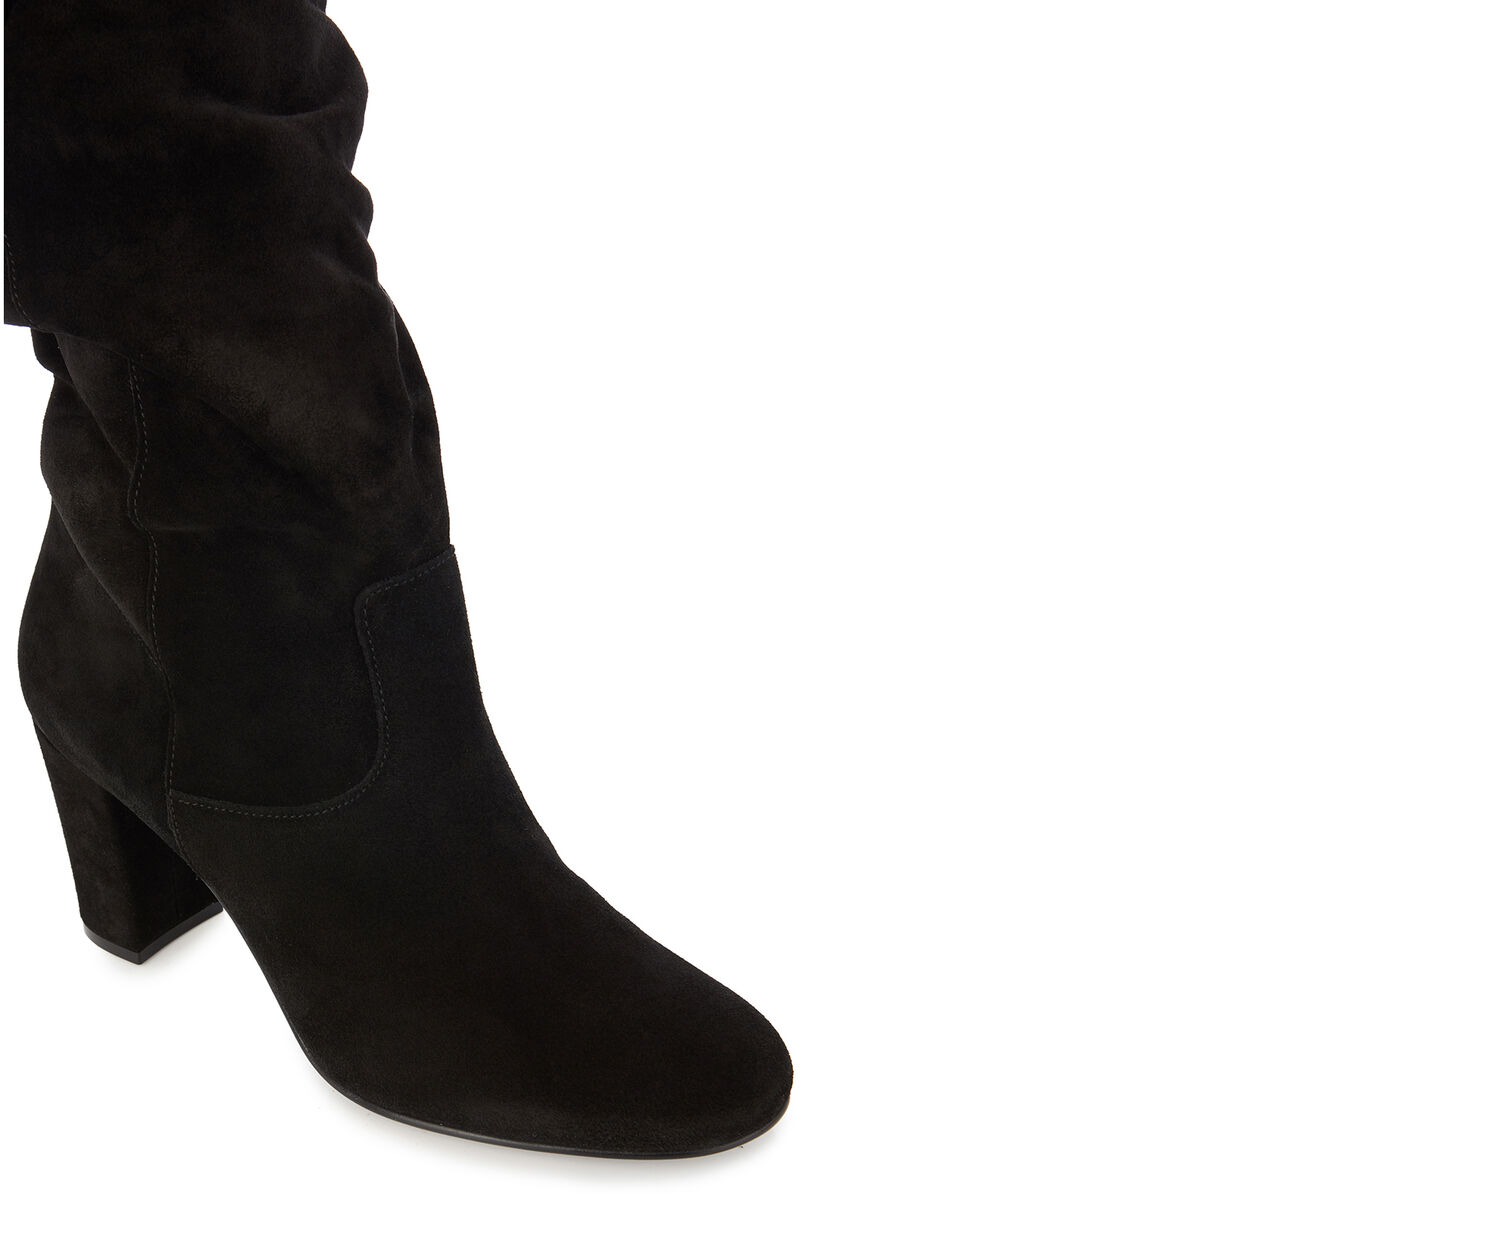 Oasis, SKYE SLOUCH SUEDE BOOT Black 1